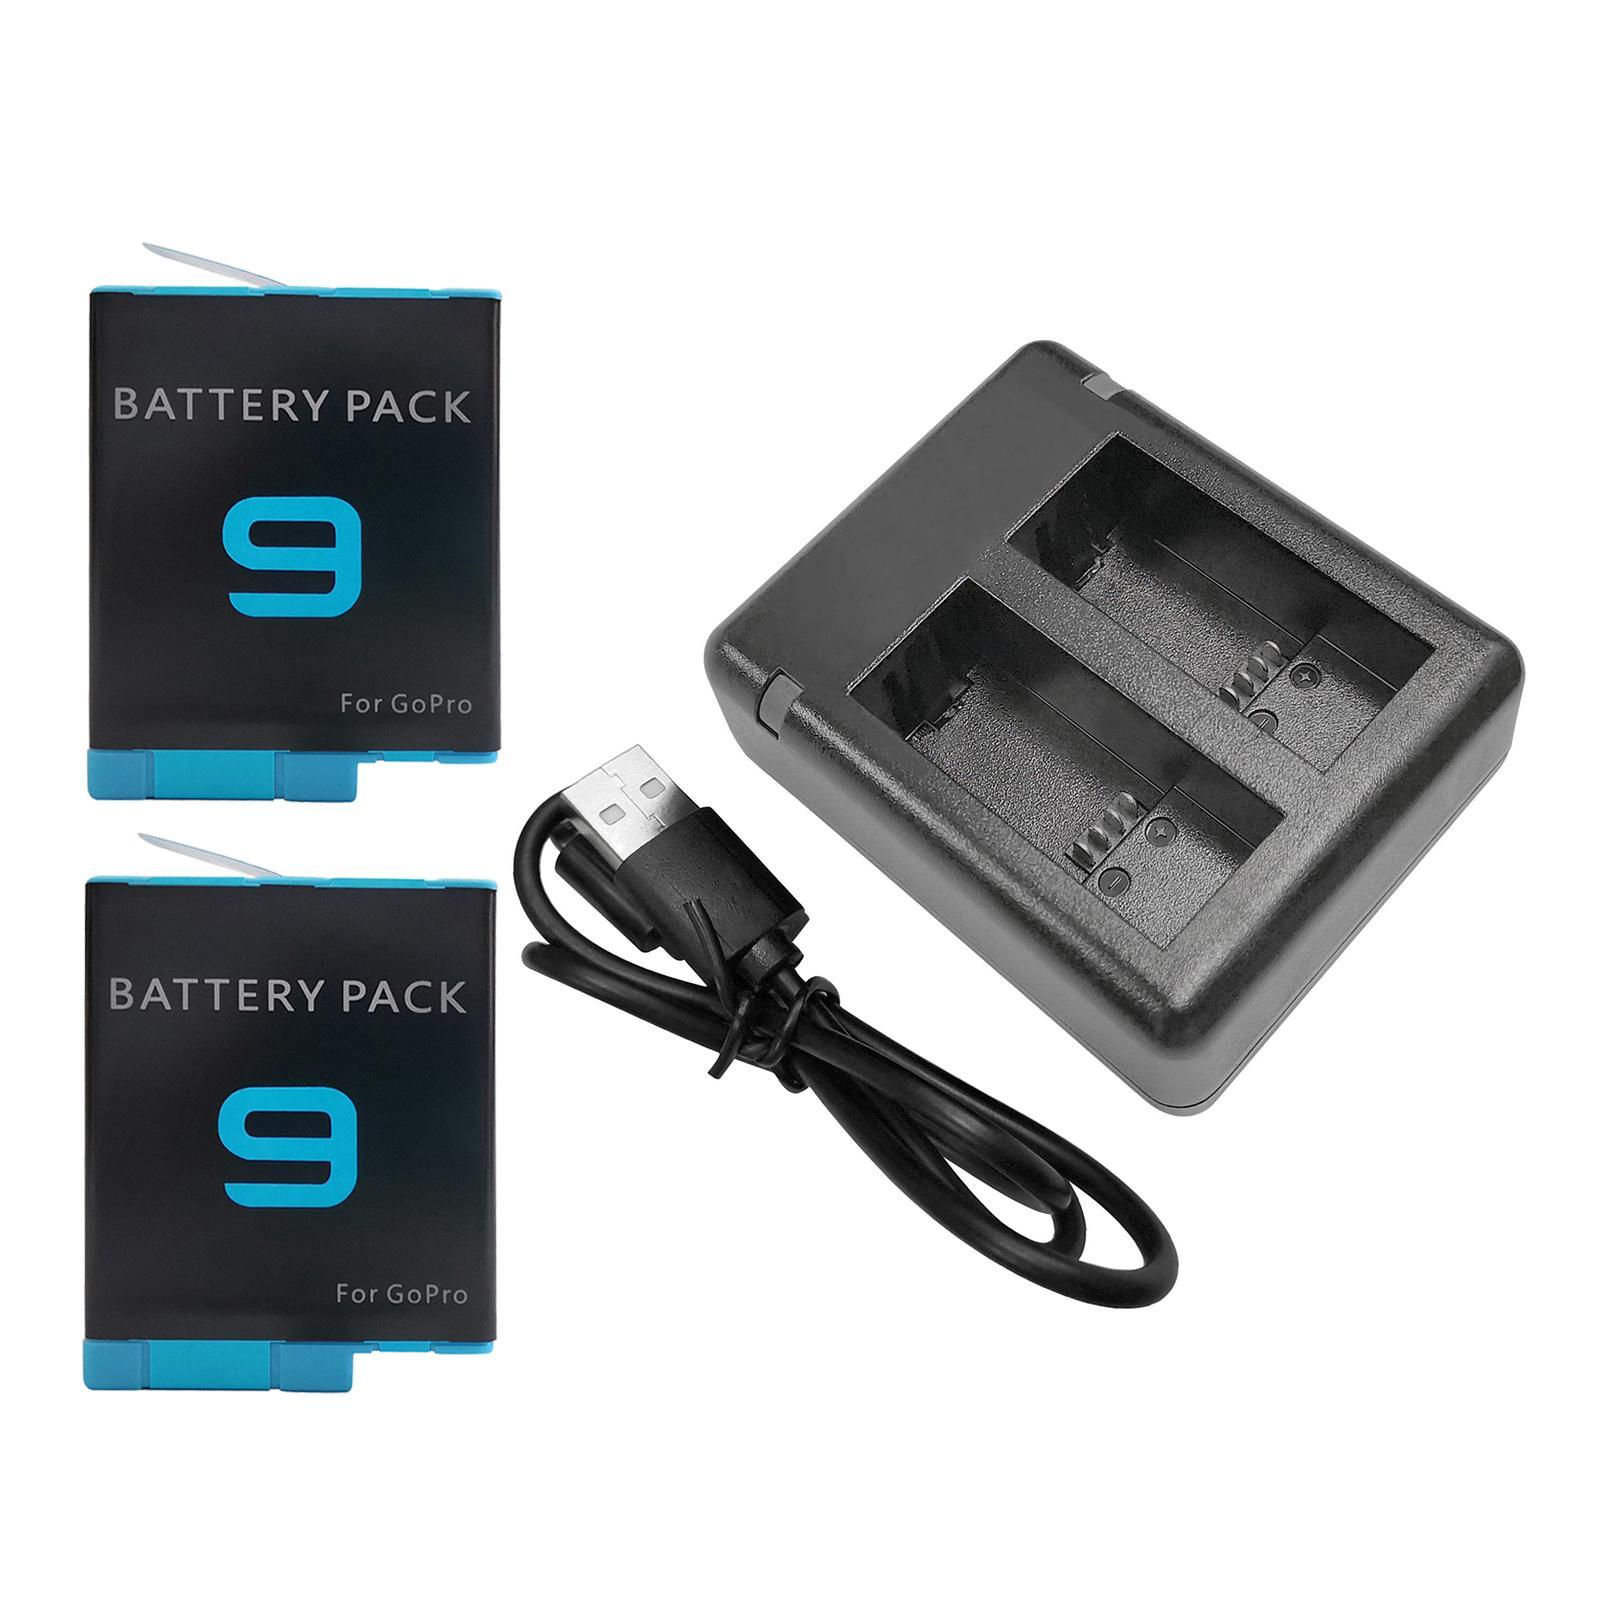 thumbnail 29 - Replace Batteries 1720mAh USB Quick Charger with Cord for   Hero 9 -Black